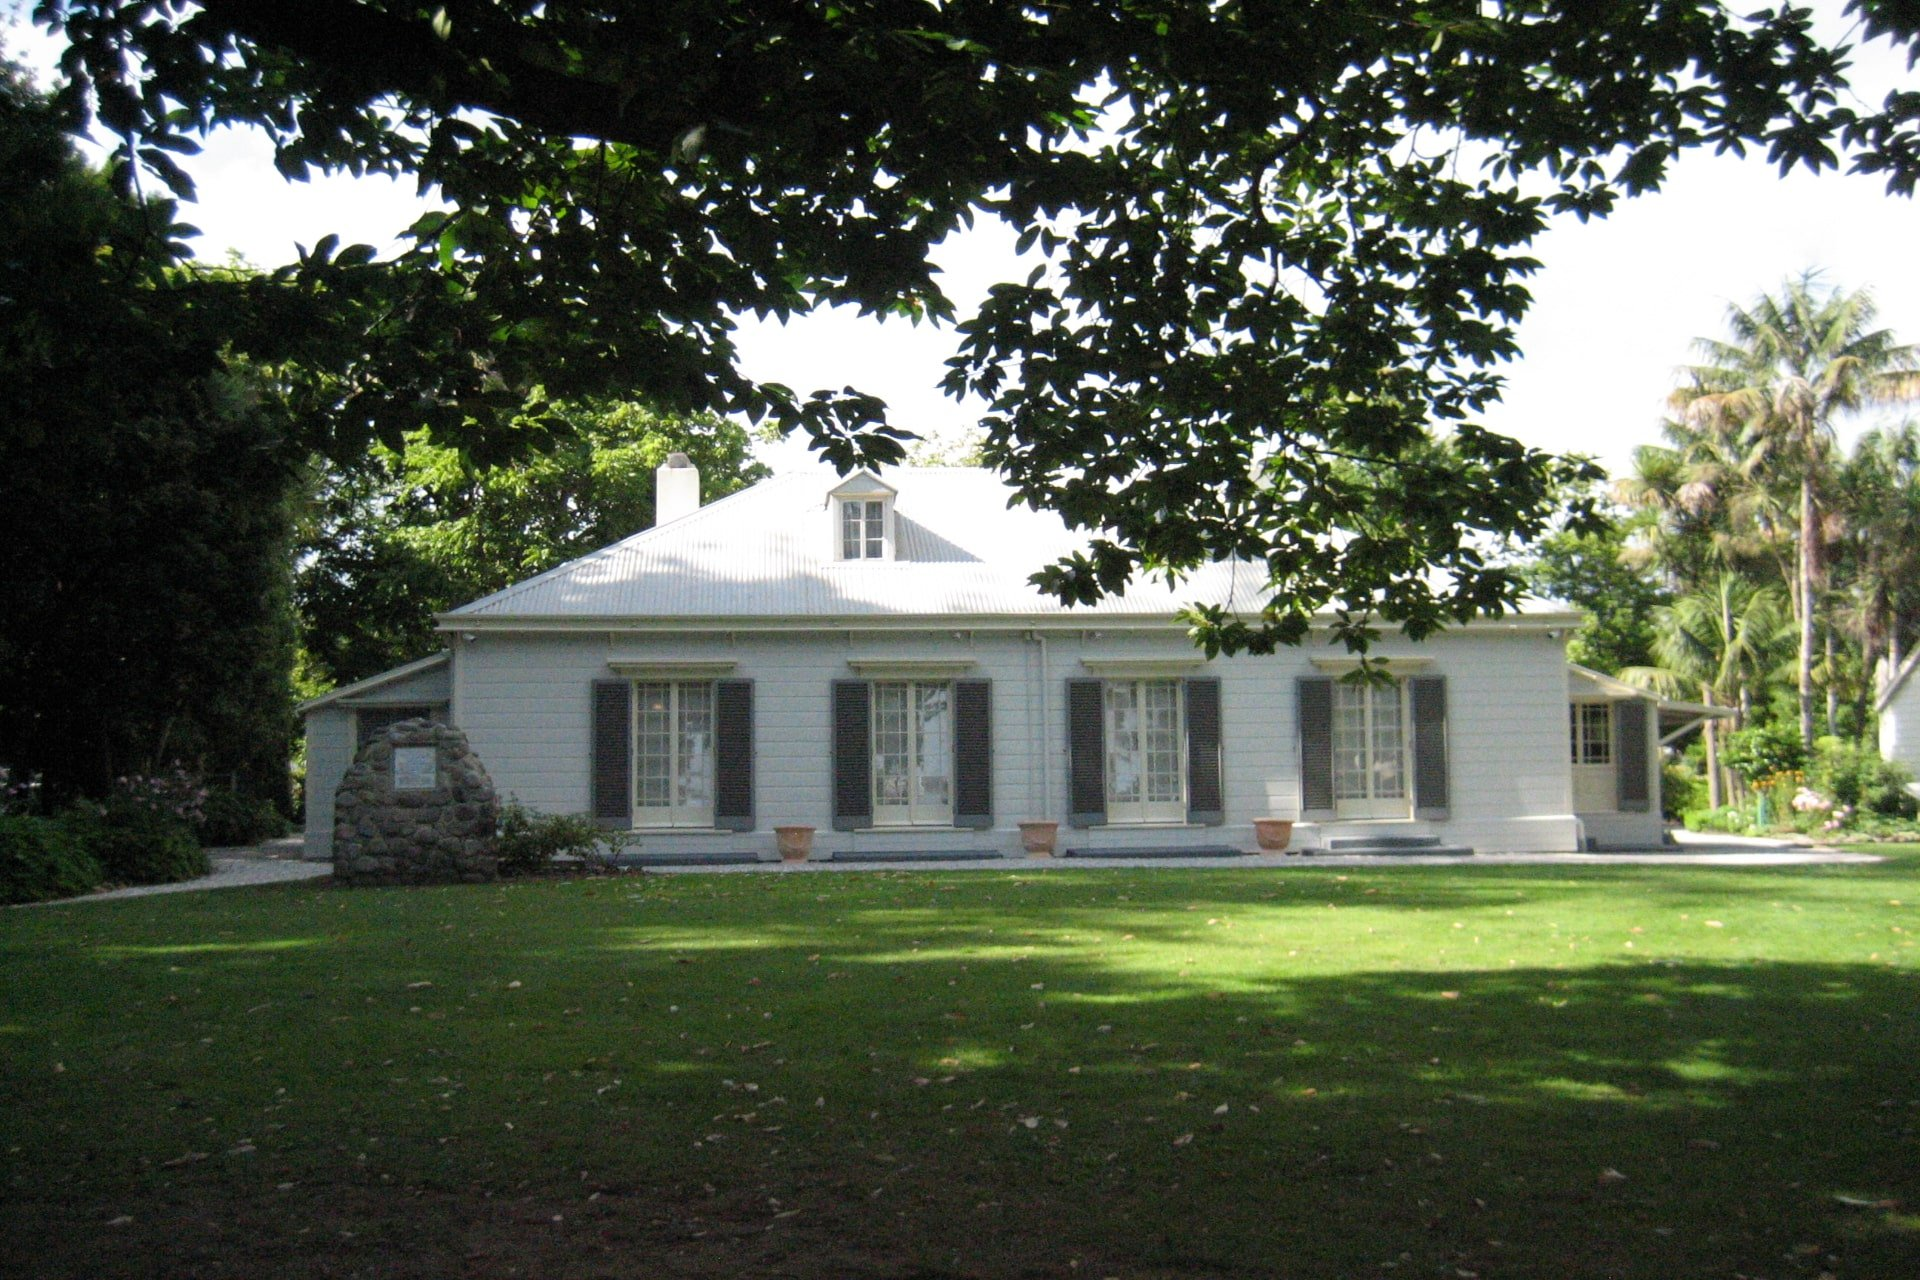 The Tauranga Elms Mission House